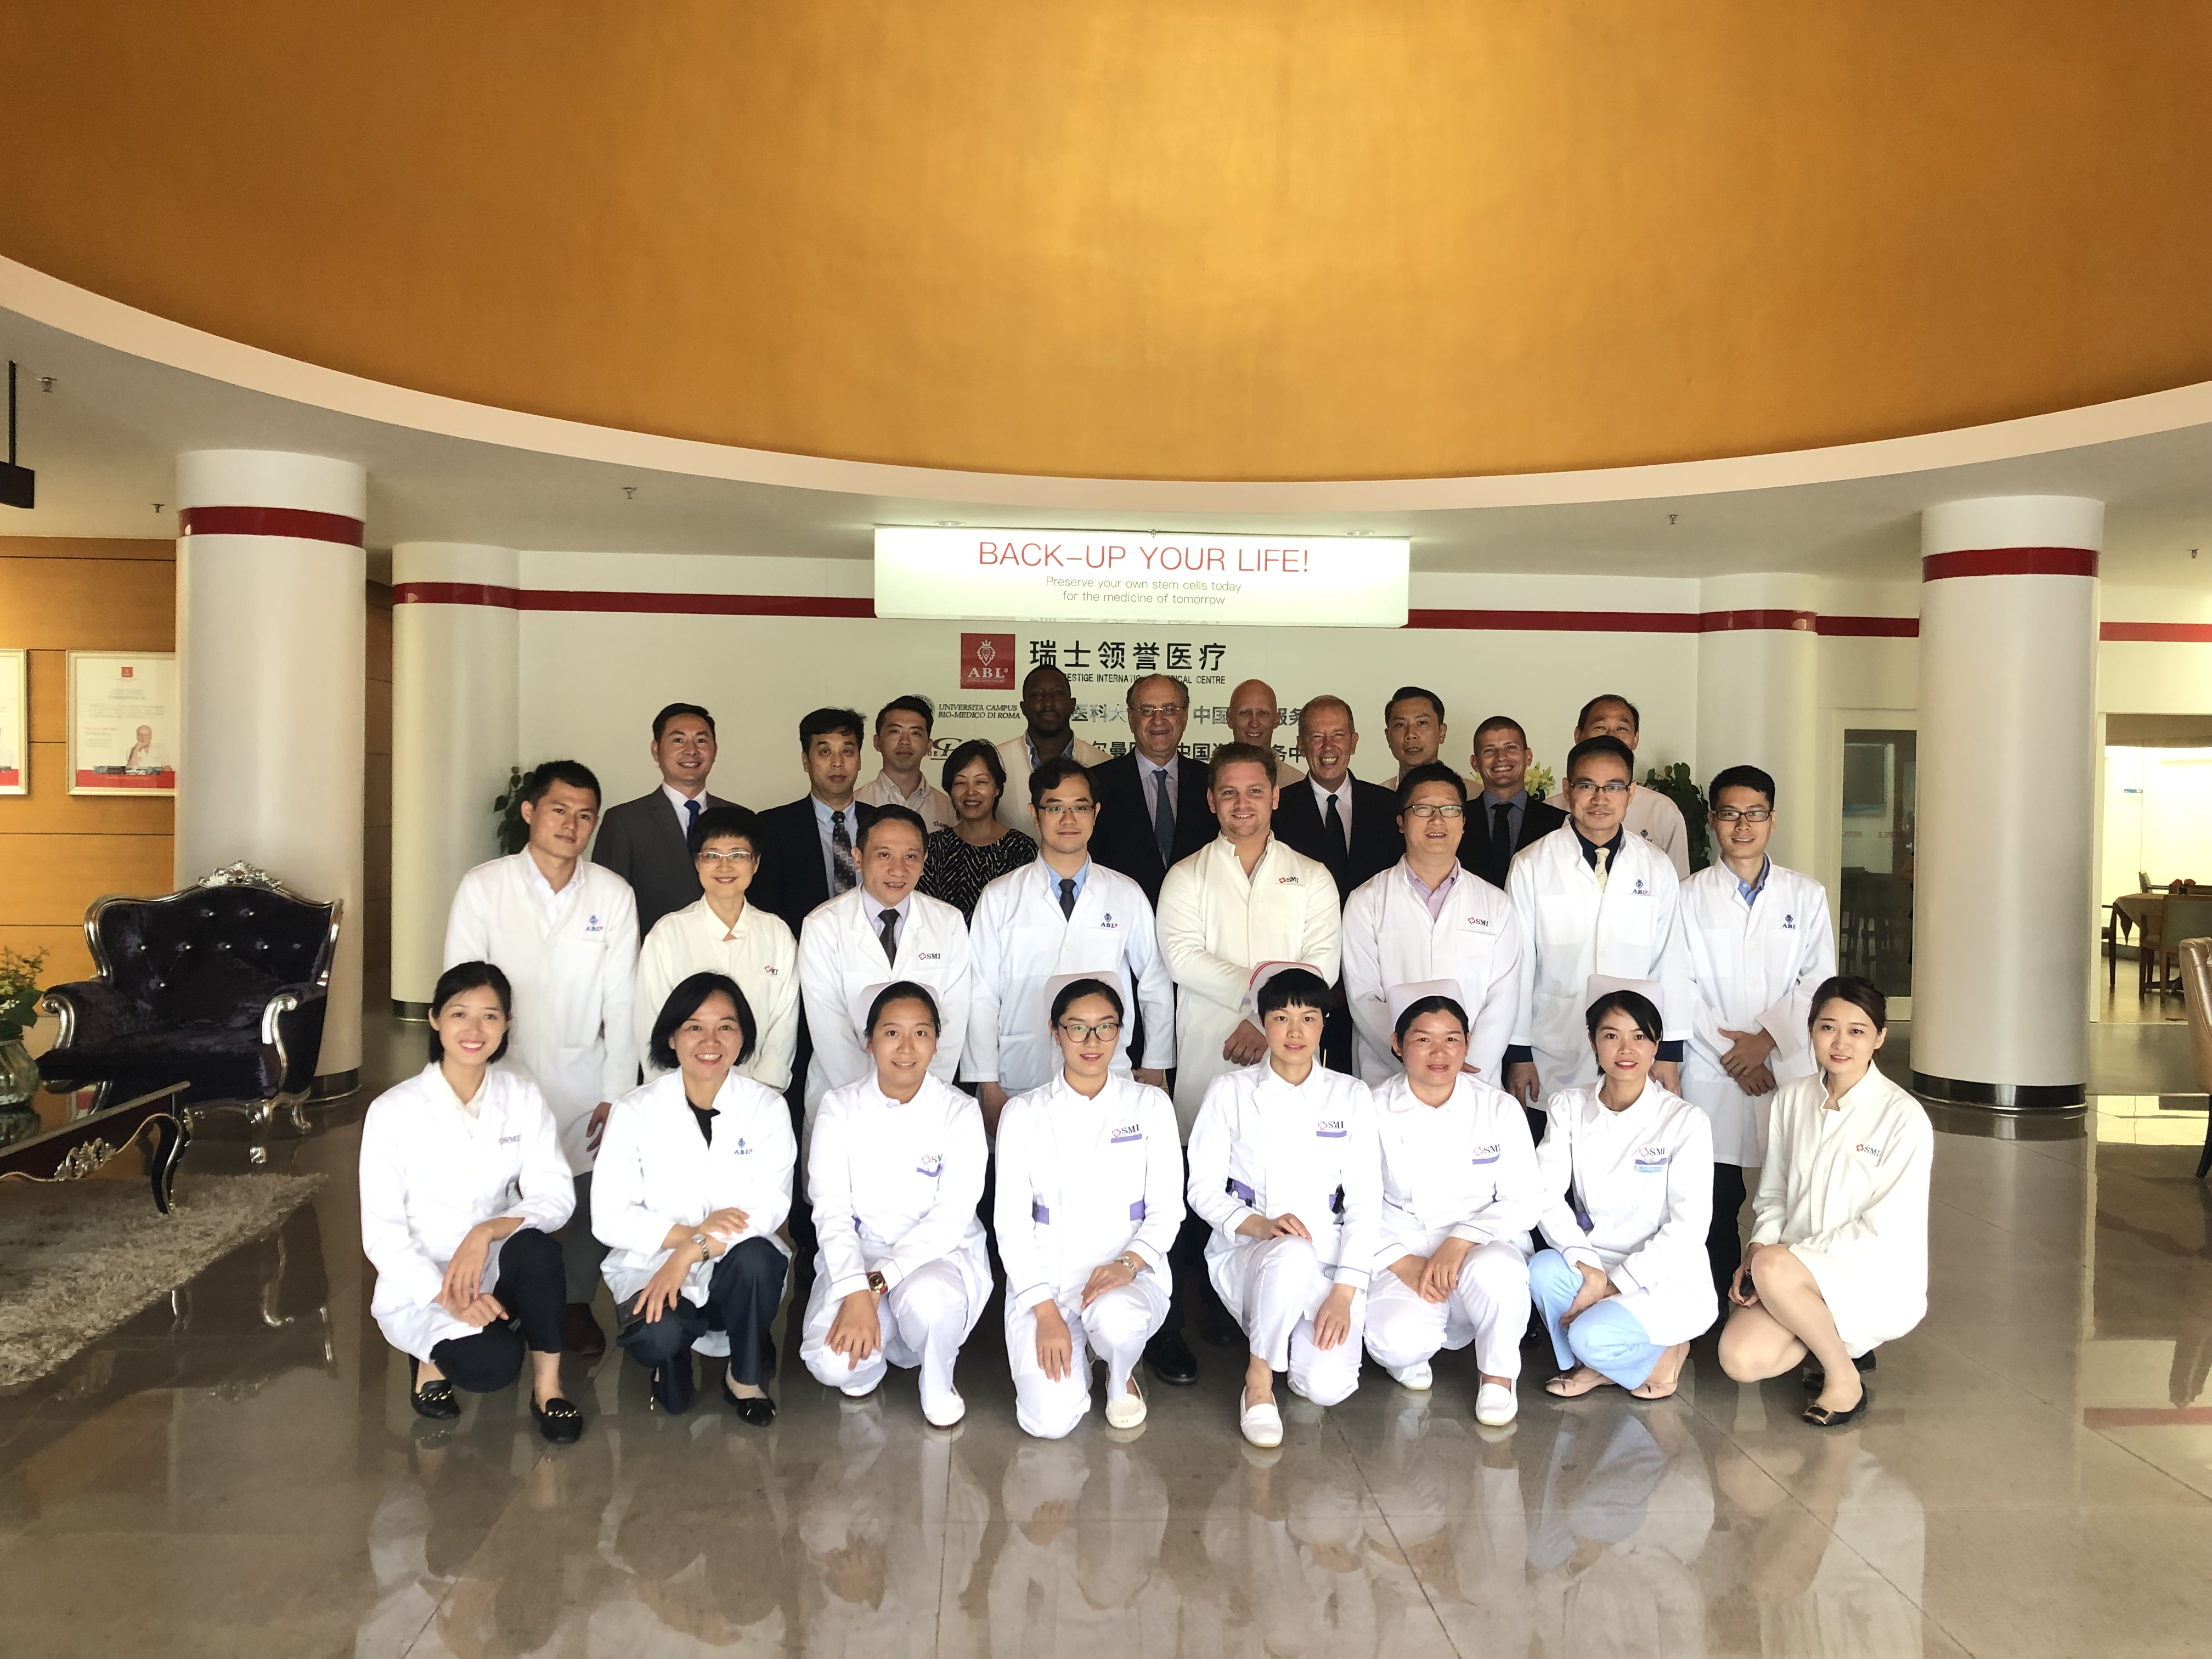 Equipe Médicale ABL2019 Canton Chine